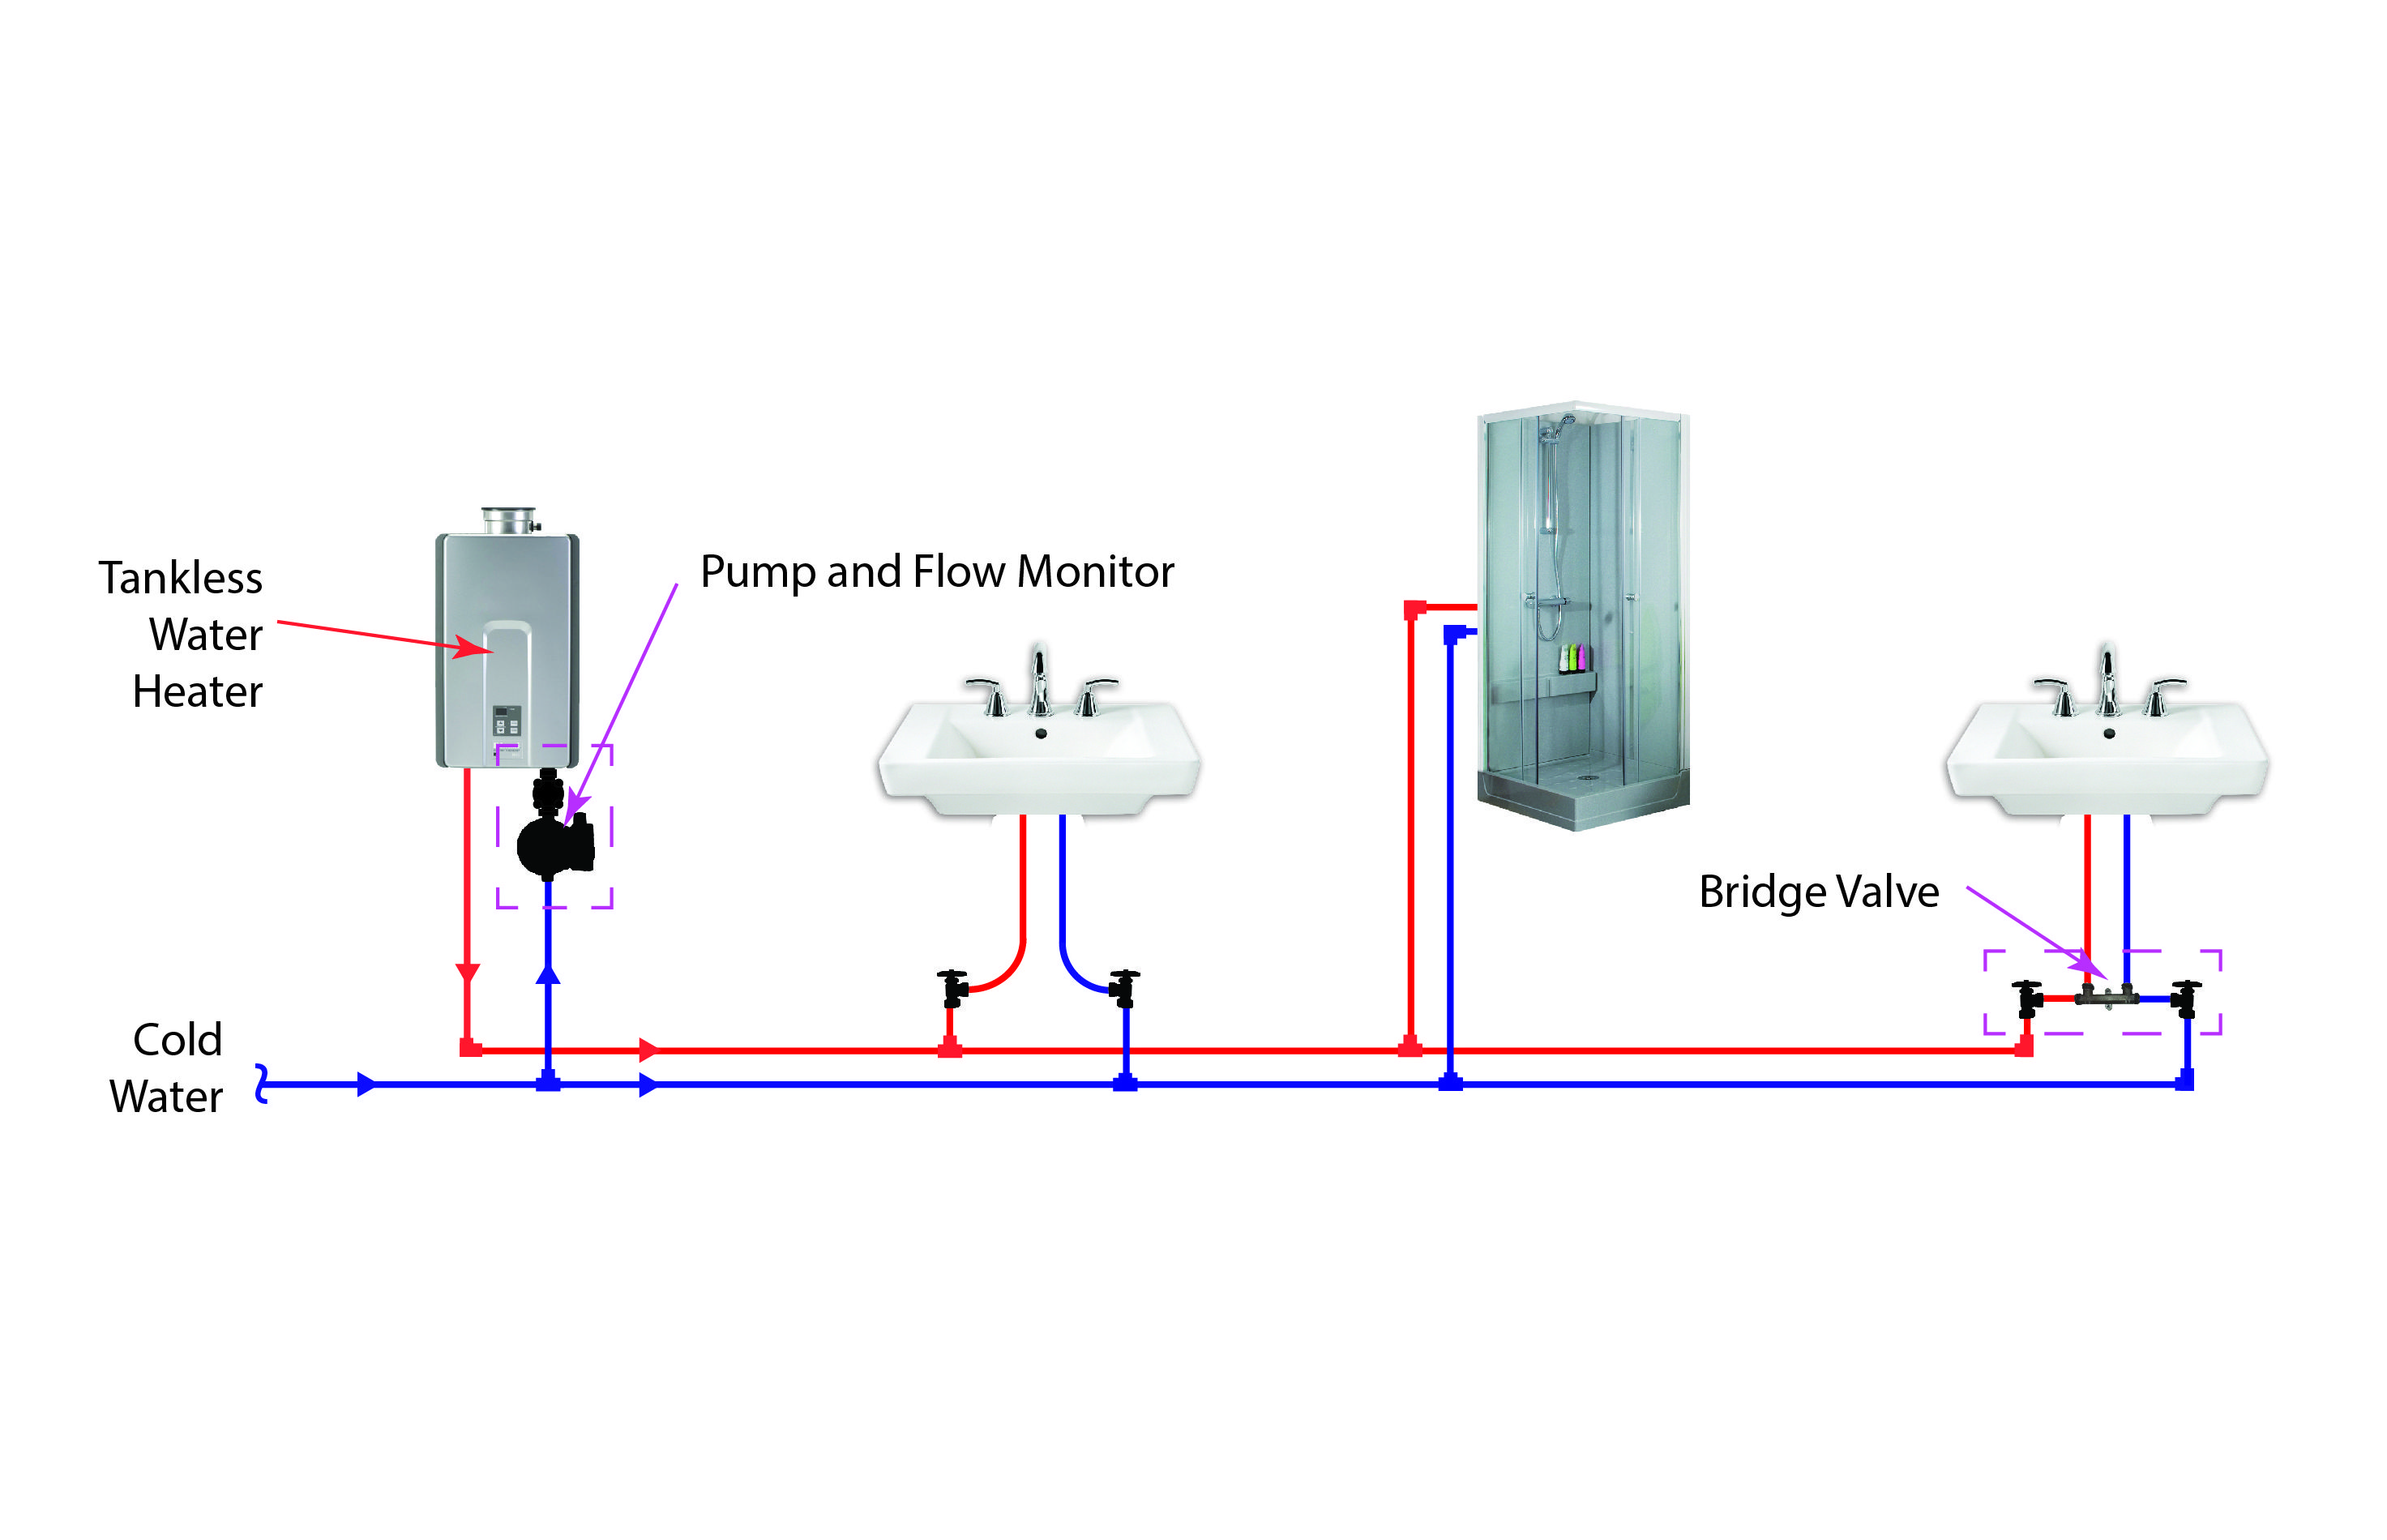 plumbing diagram for tankless water heater